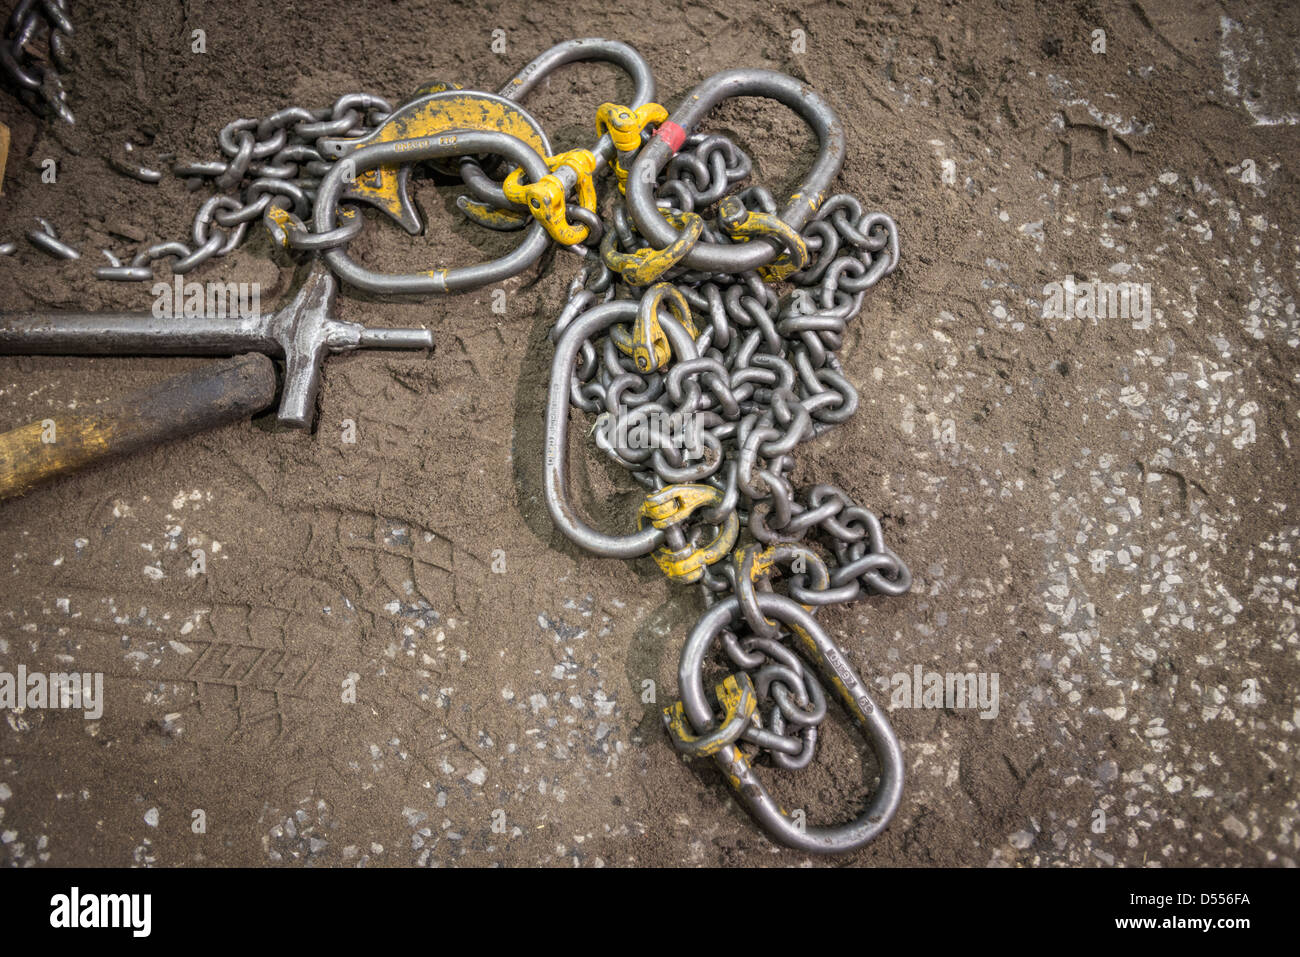 Metal chain on dirt floor - Stock Image